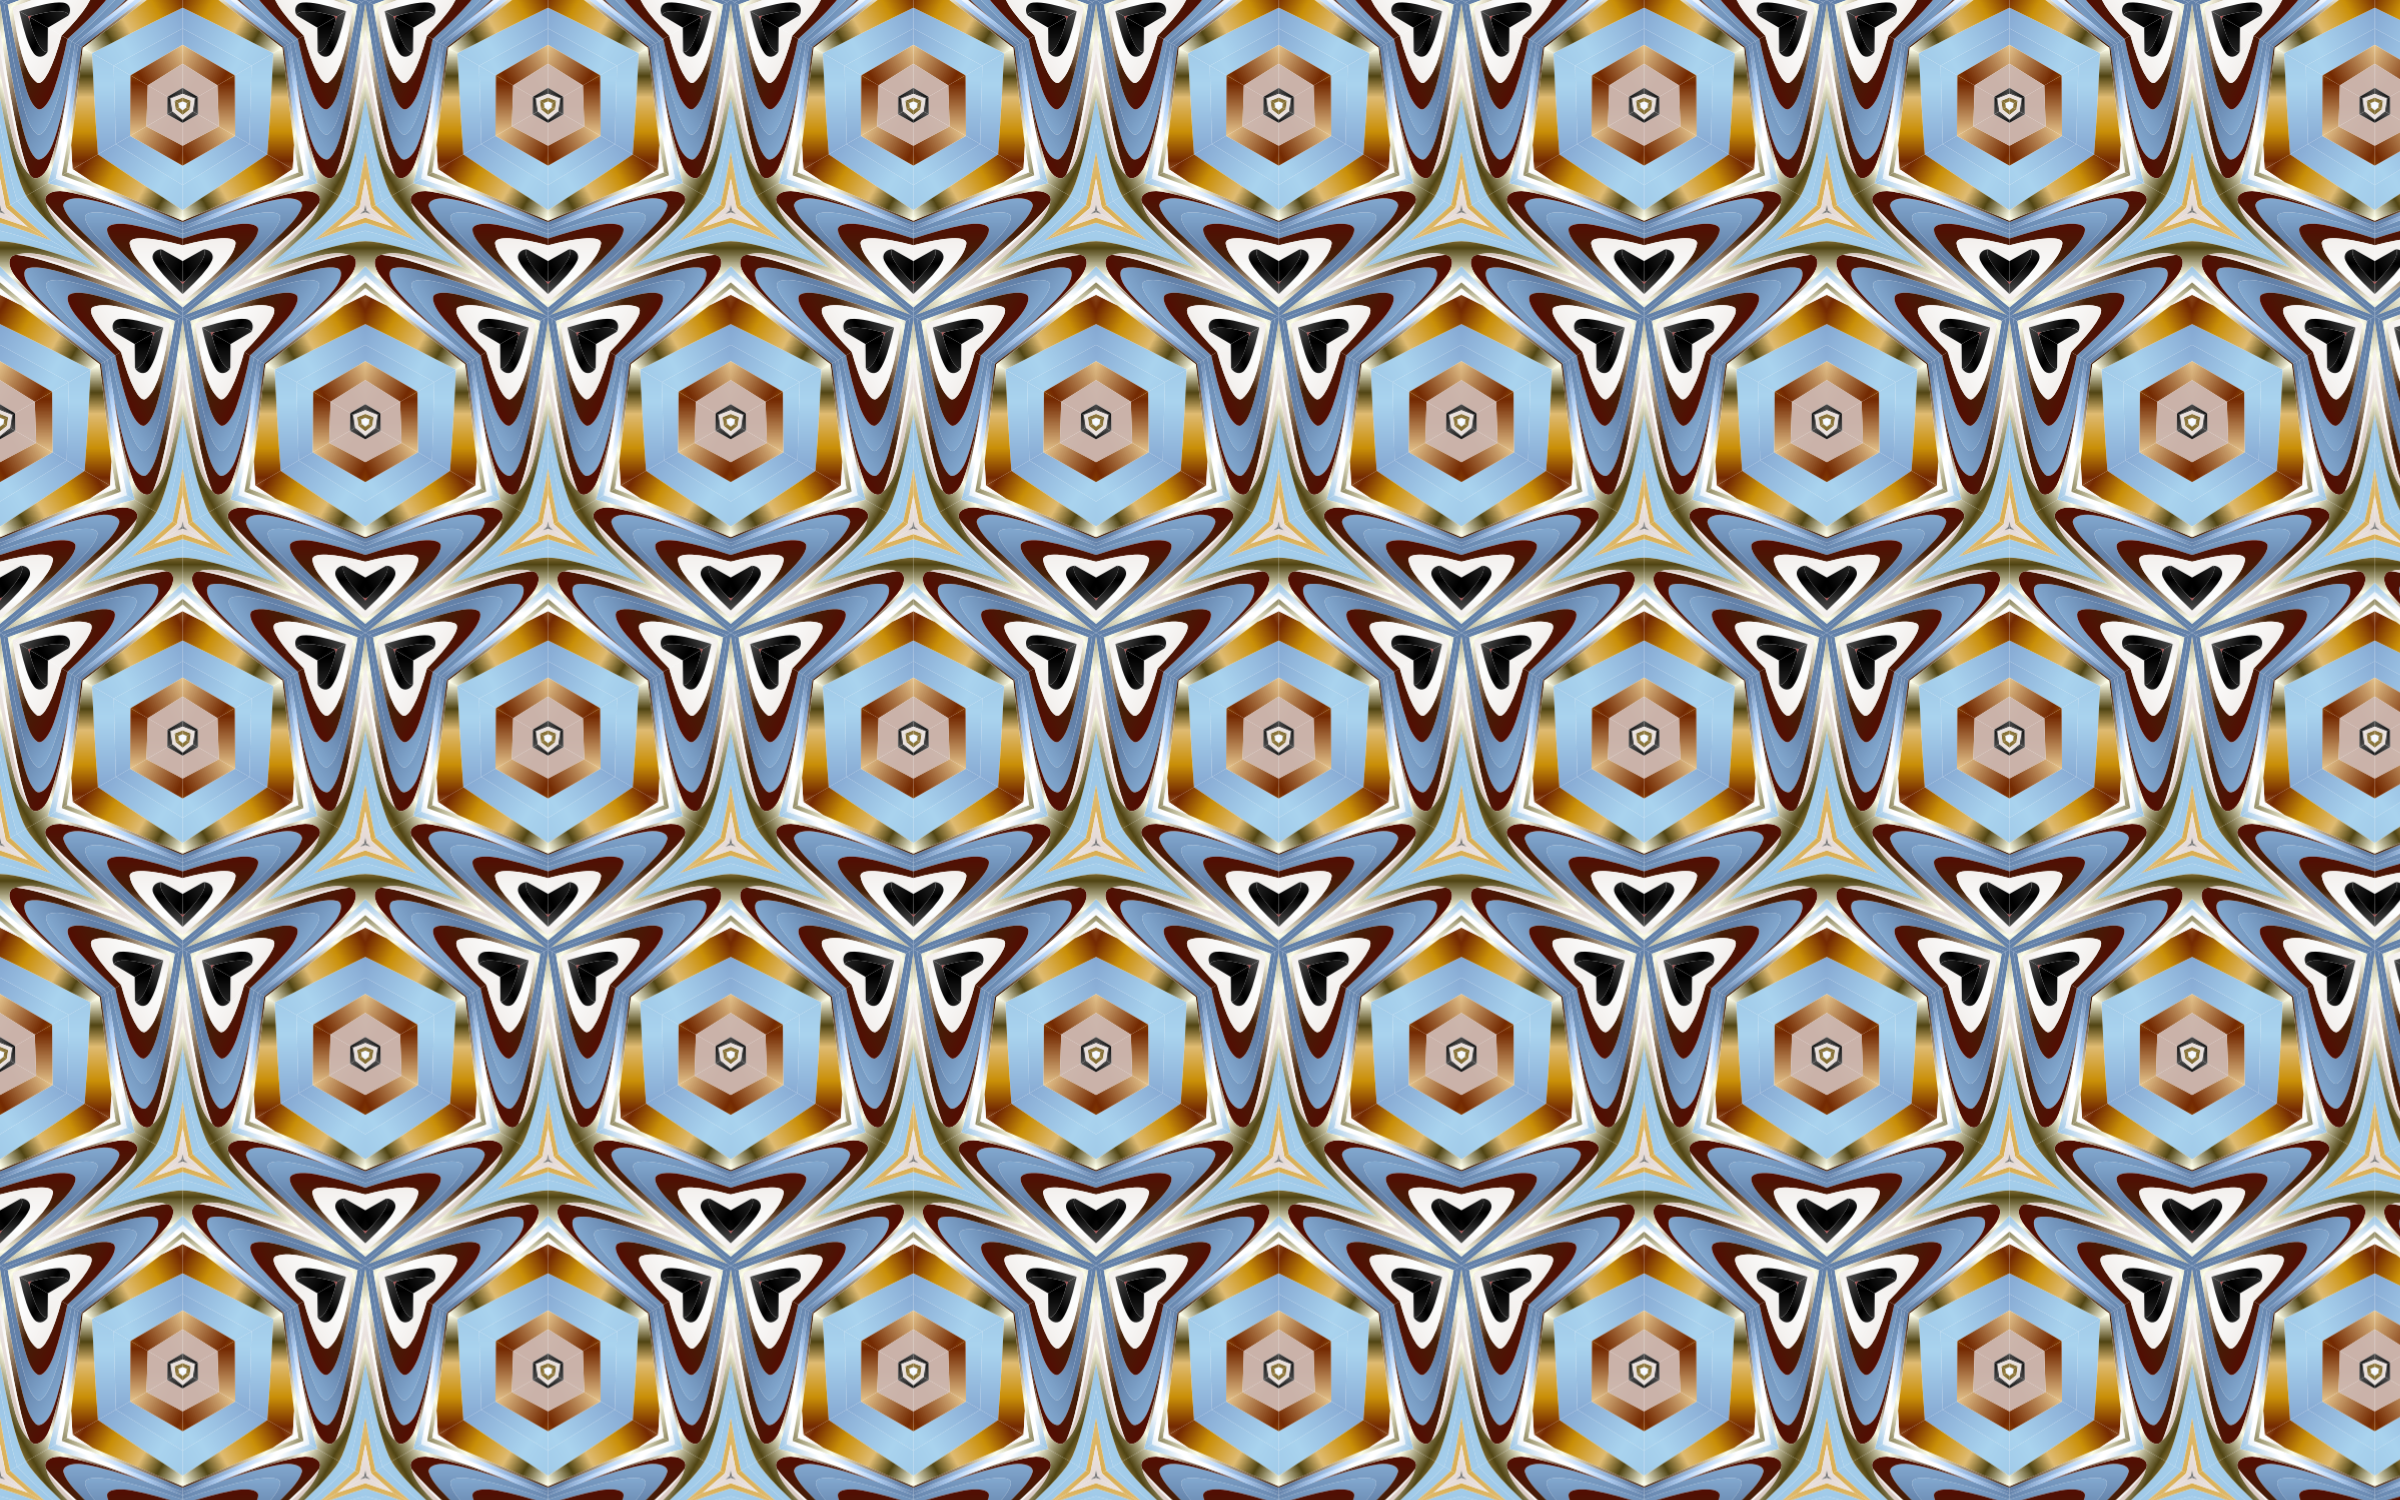 Seamless Pattern DailySketch58 5 by GDJ